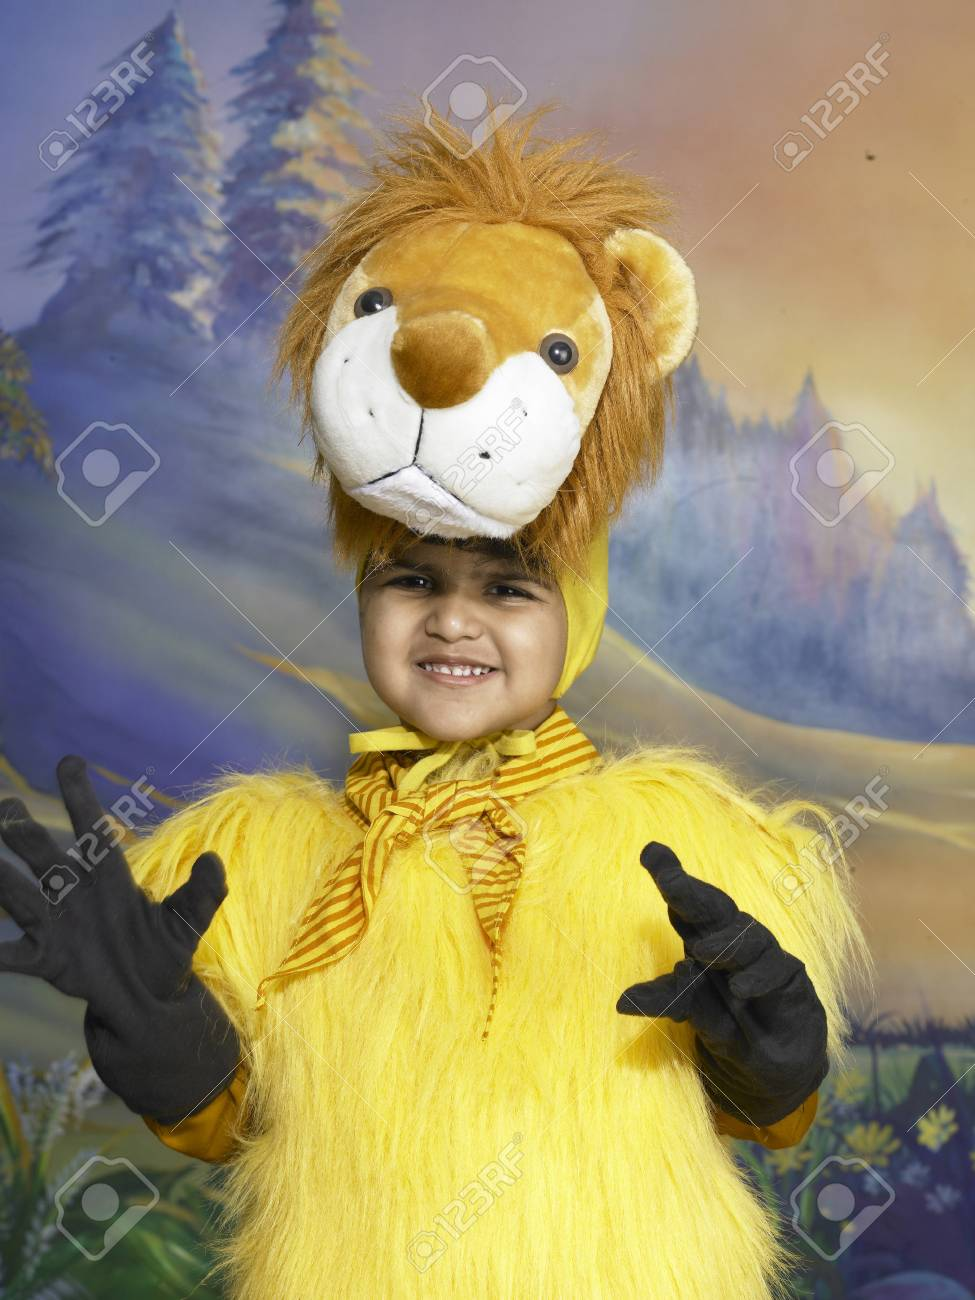 af13e376fe South Asian Indian boy dressed as lion performing fancy dress competition  on stage in nursery school